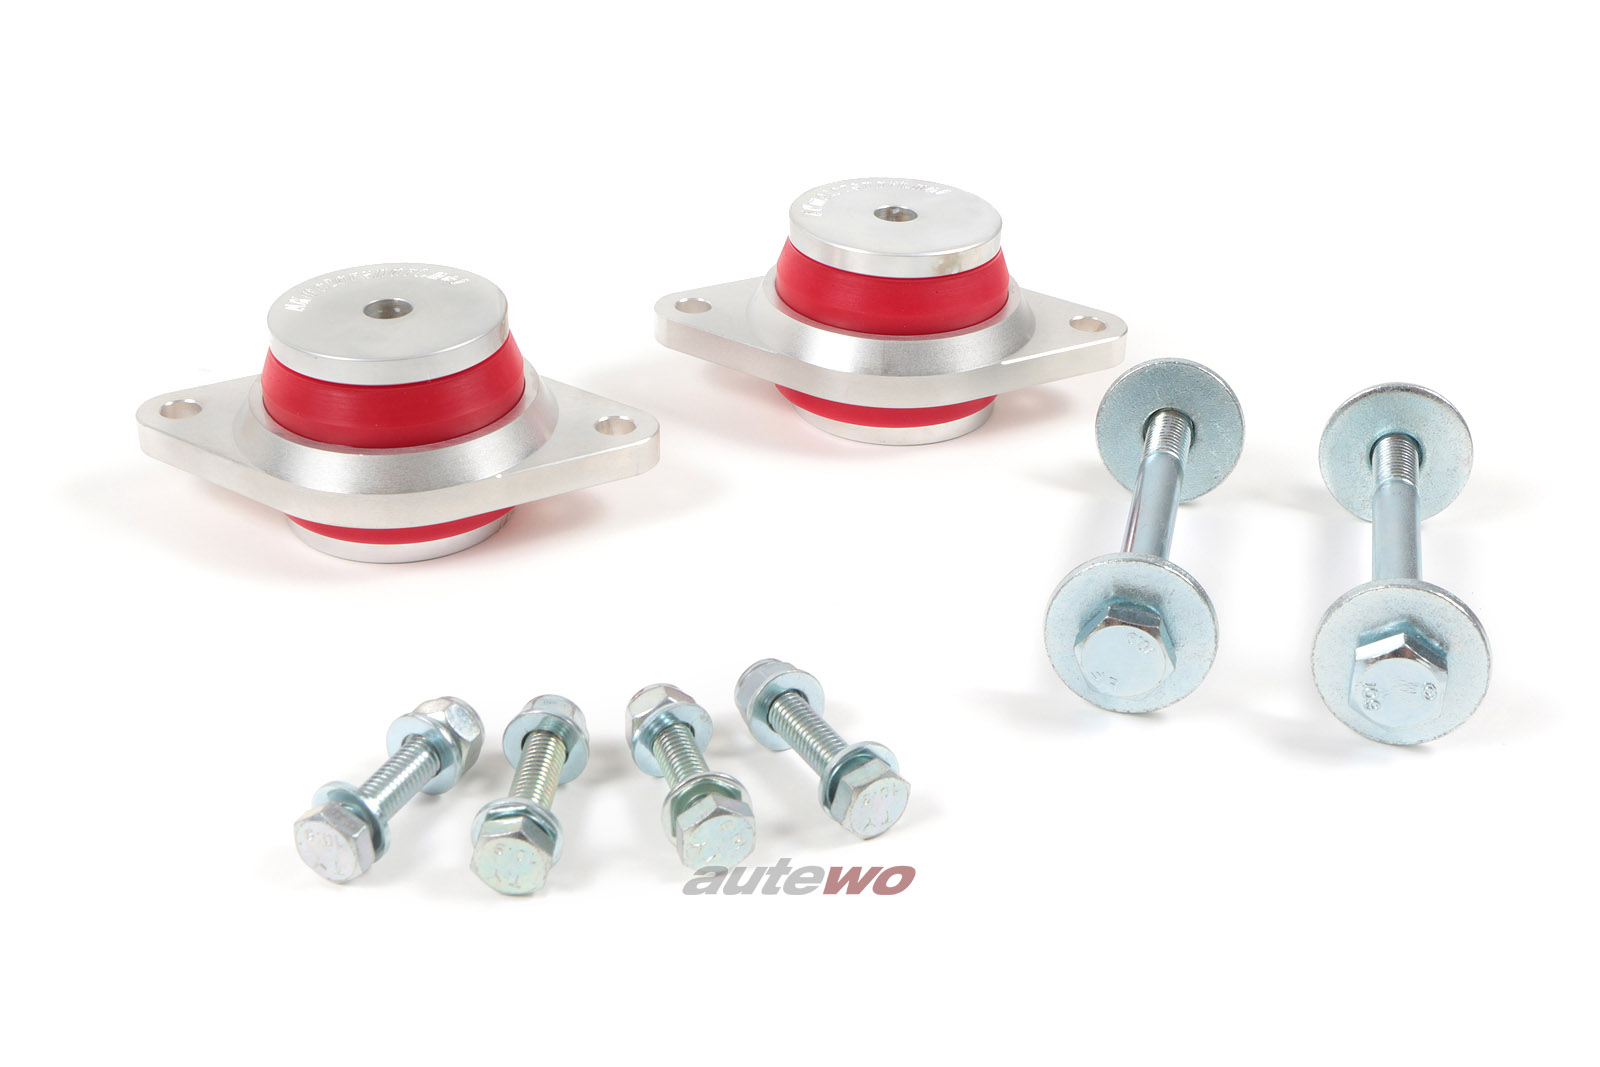 AK Motorsport PU-Getriebelager 5 Zylinder Audi 80/90 Coupe Typ 81/85/89/B4/RS2